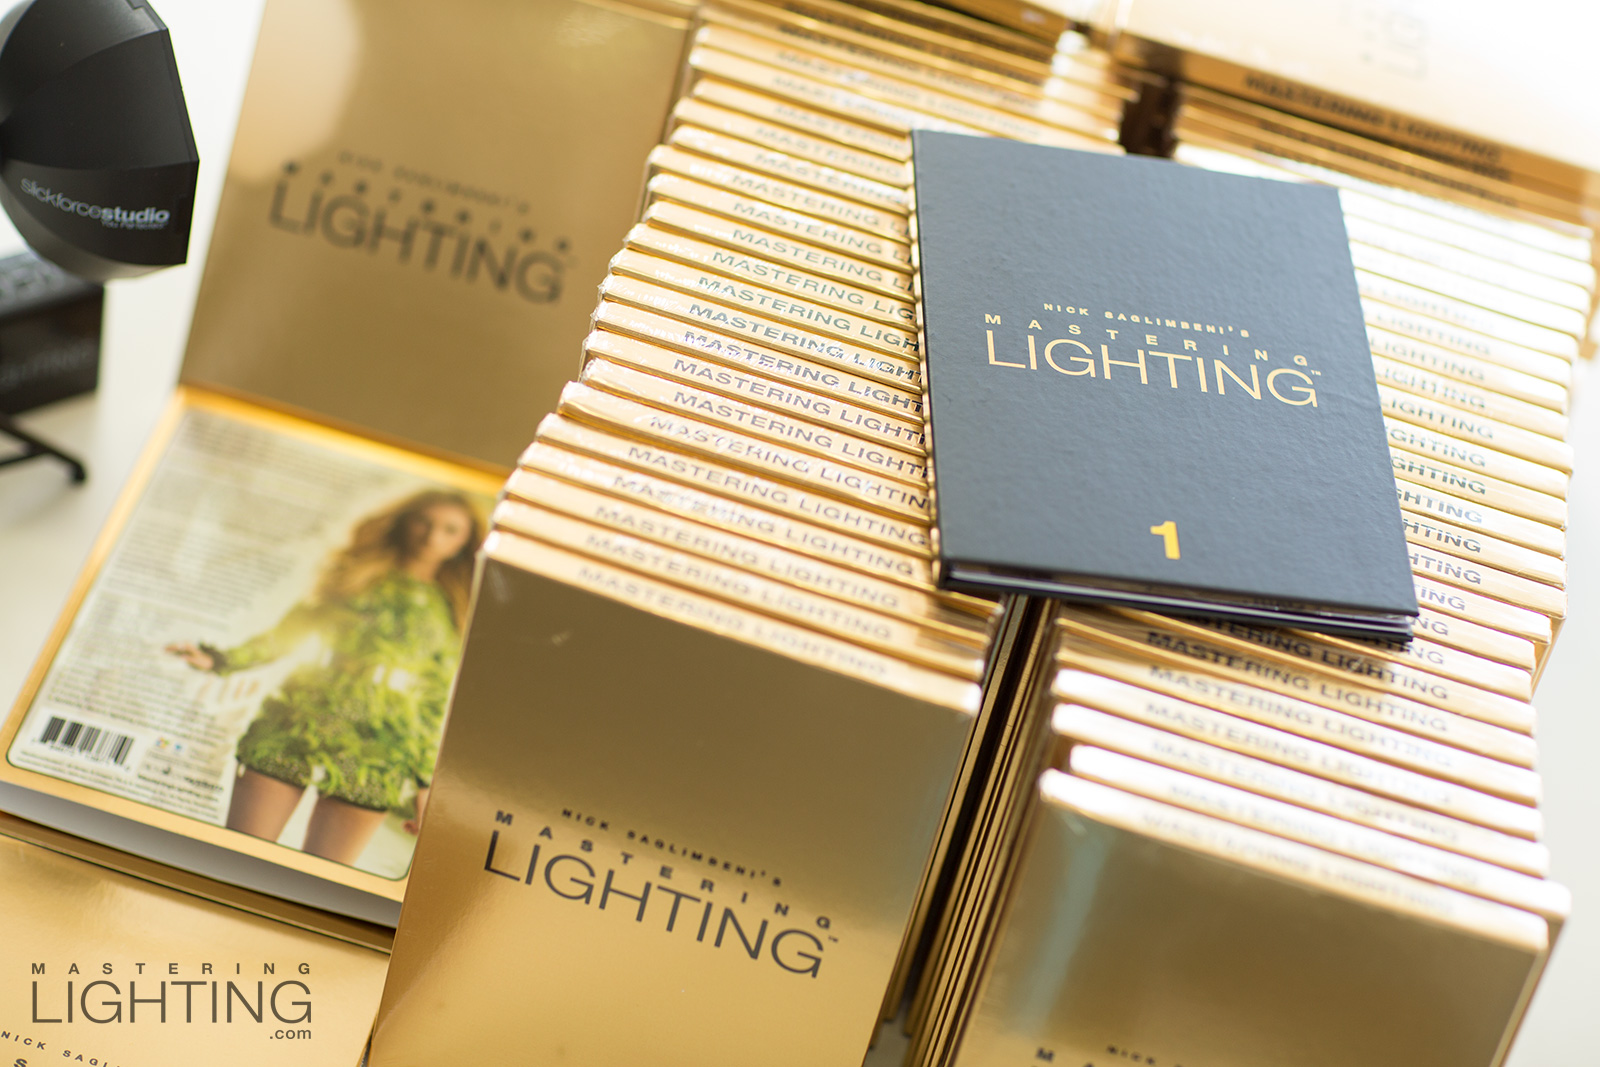 nick-saglimbeni-mastering-lighting-gold-foil-box-packaging-volume-one-stack-2